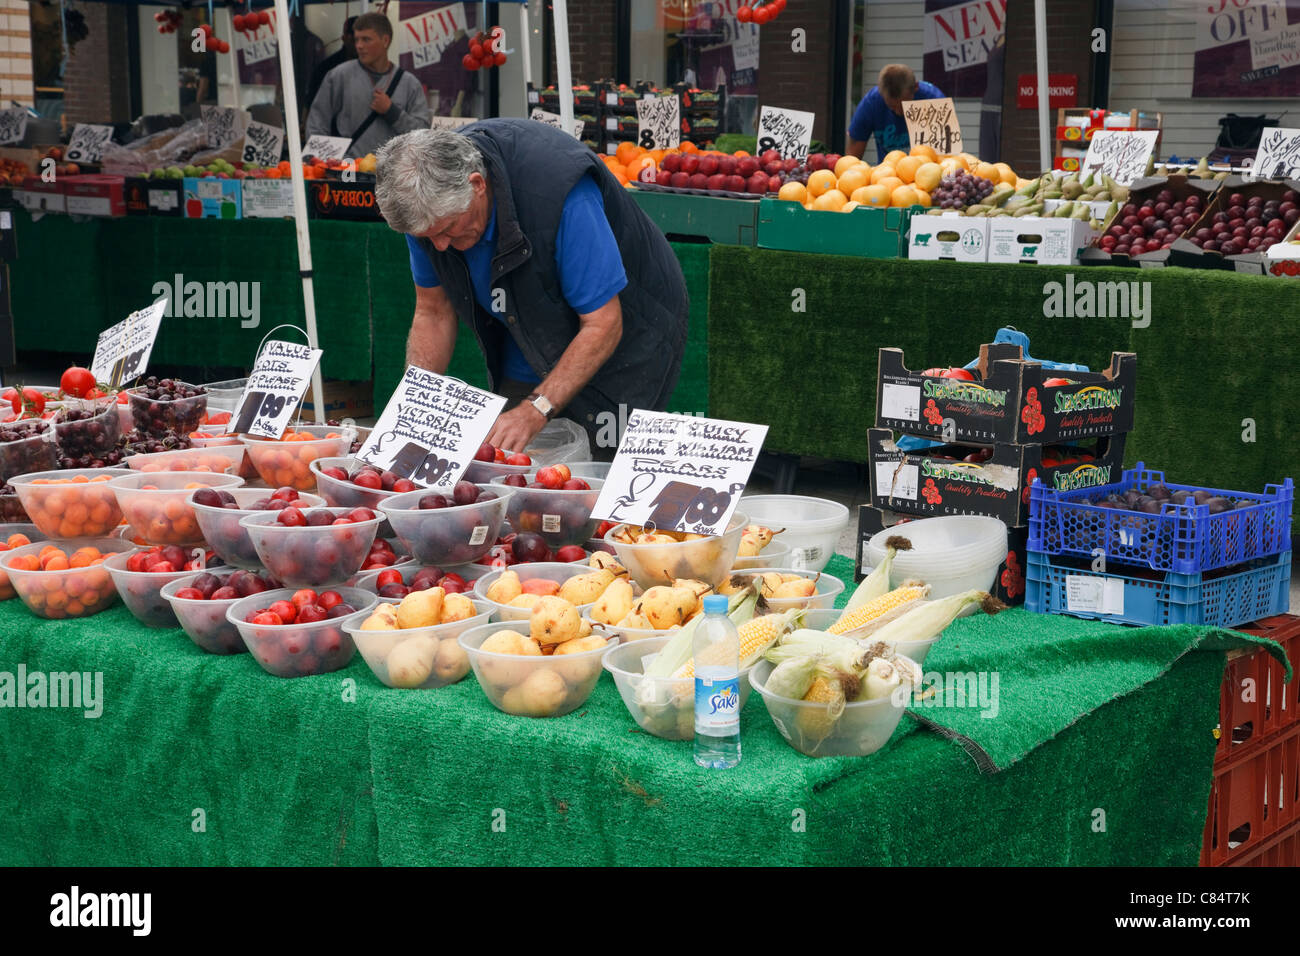 England, UK, Britain, Europe. Man selling bowls of fruit on a market stall - Stock Image